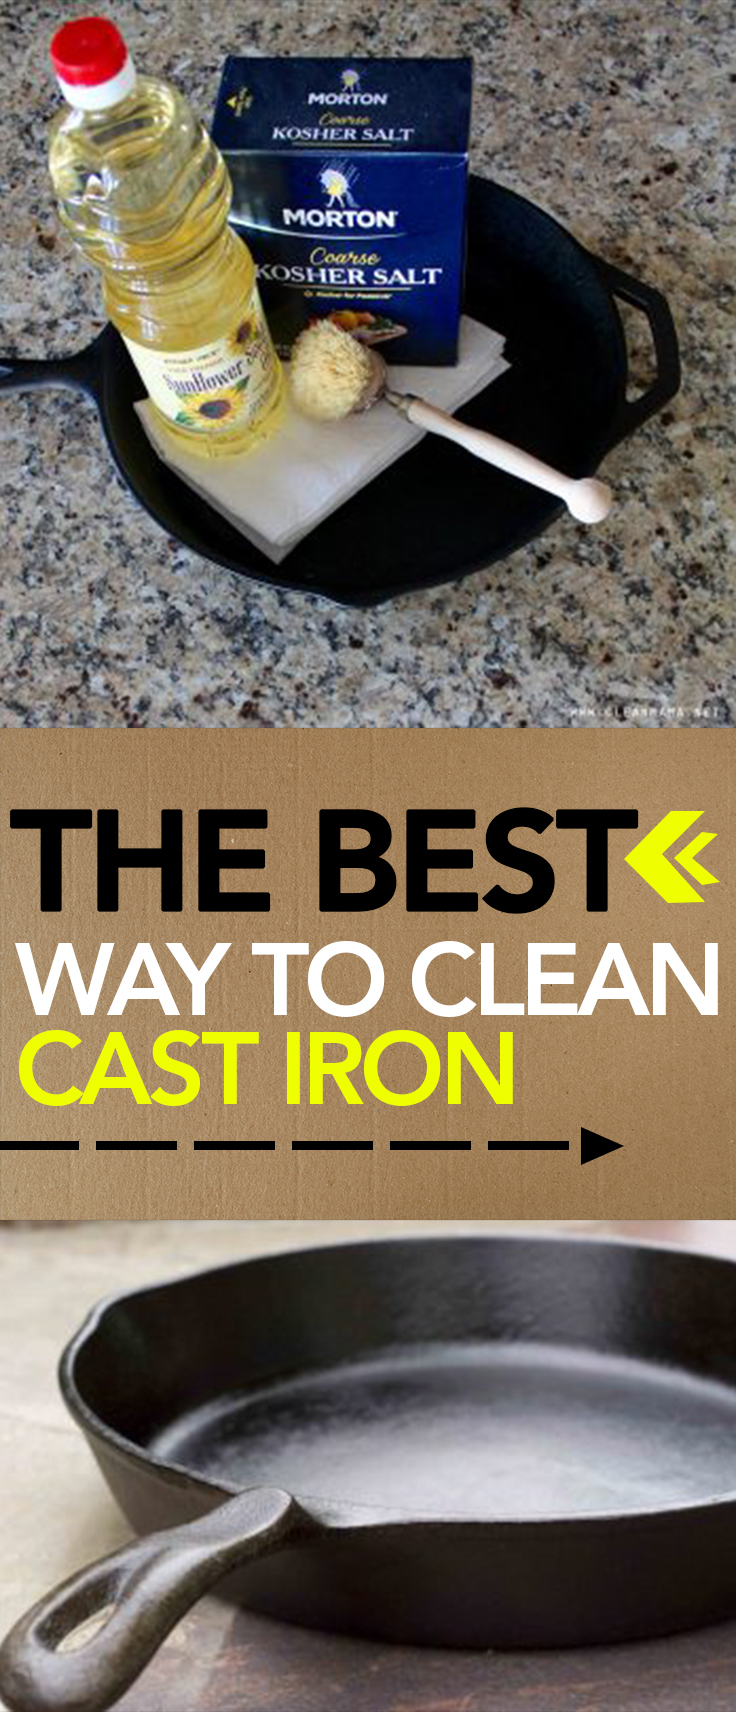 the best way to clean cast iron page 3 of 8 26519